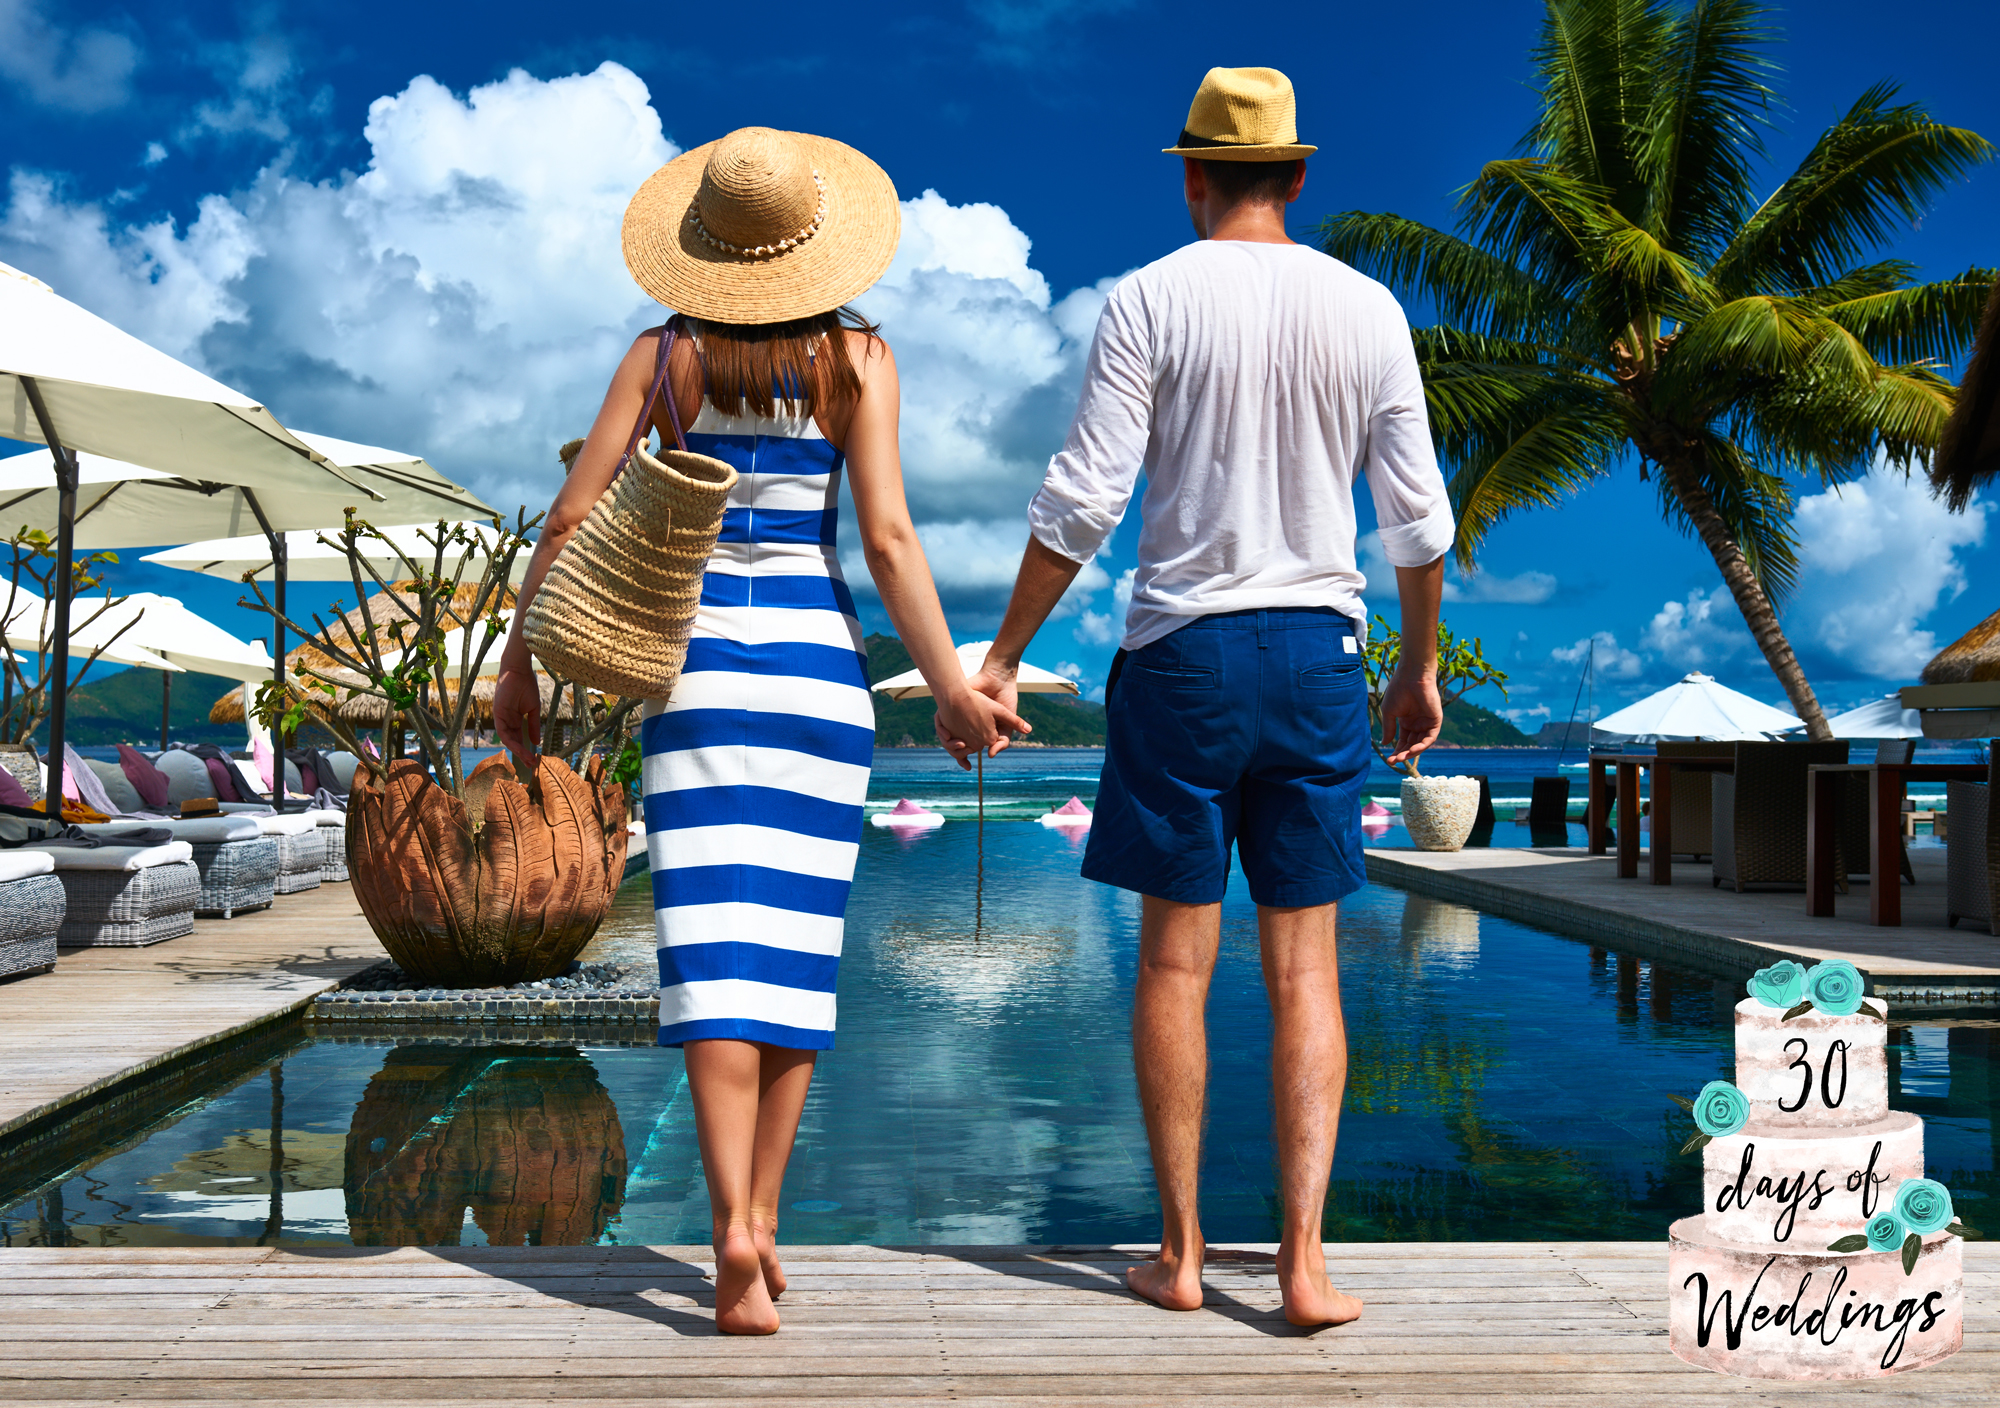 How To Plan Your Dream Honeymoon On a Budget